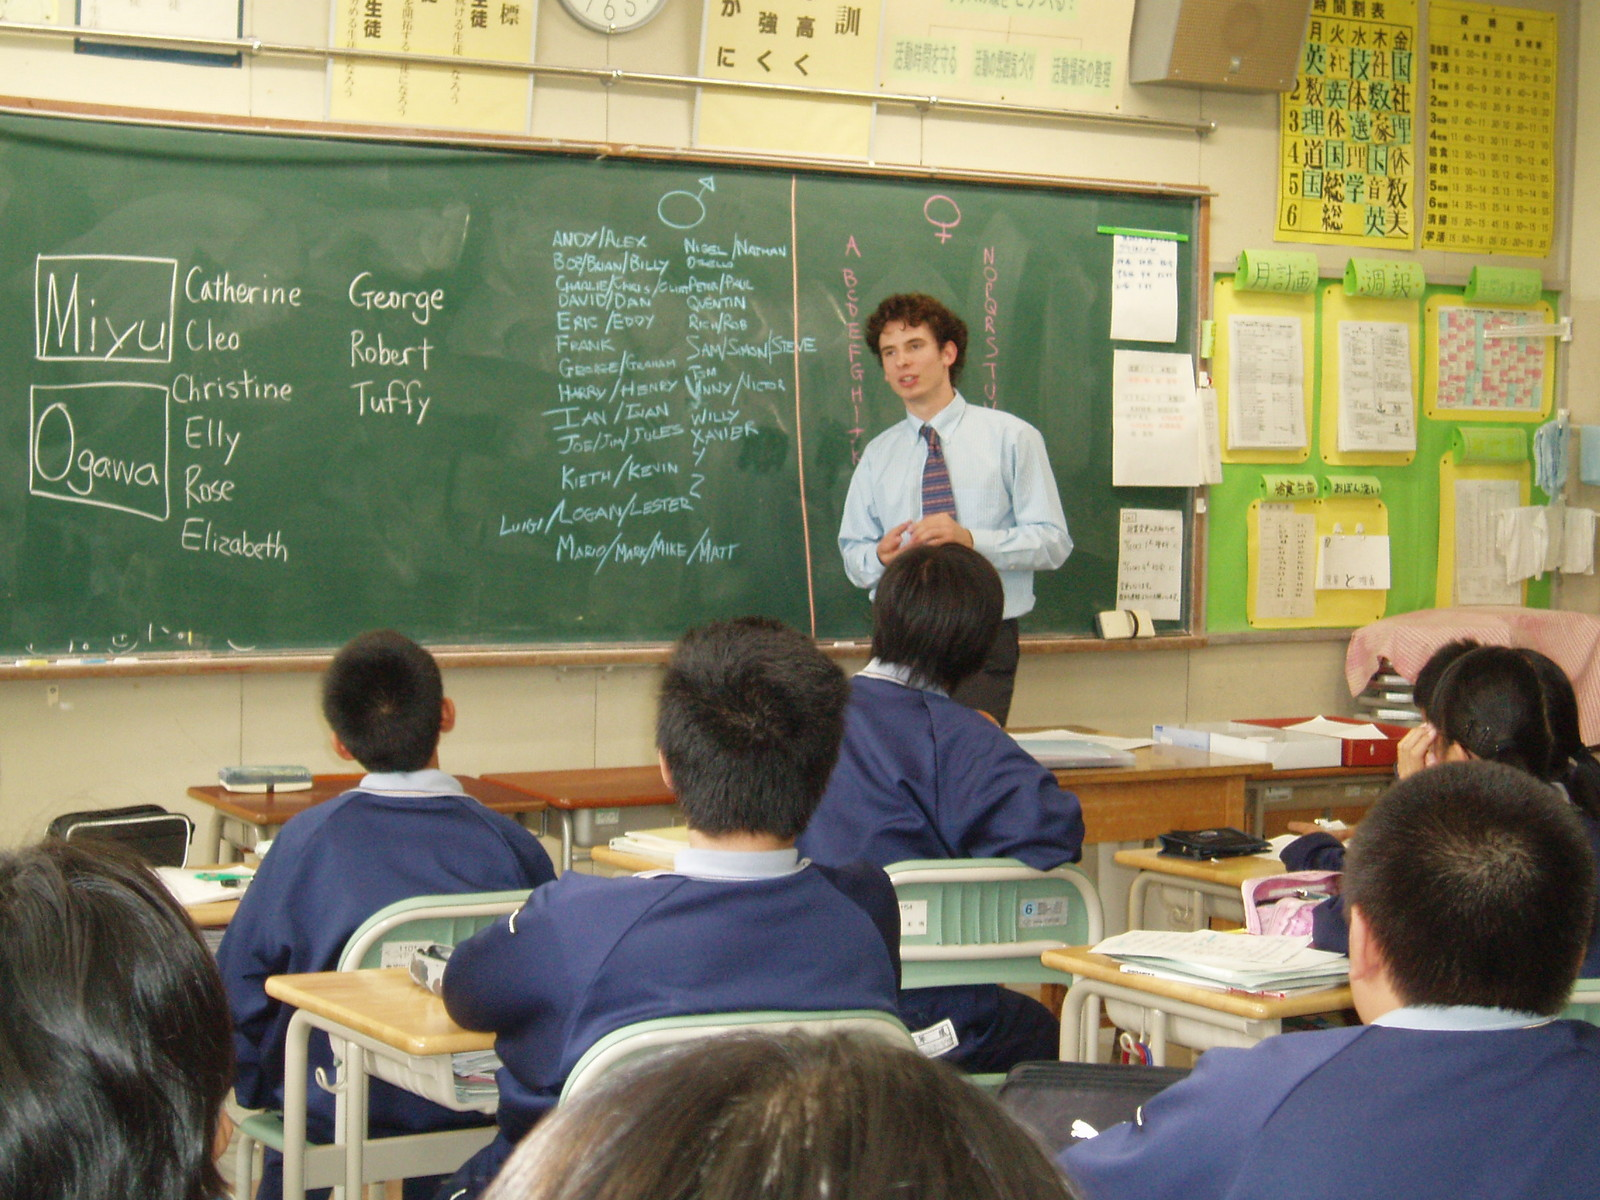 Me in a past life - teaching in Japan